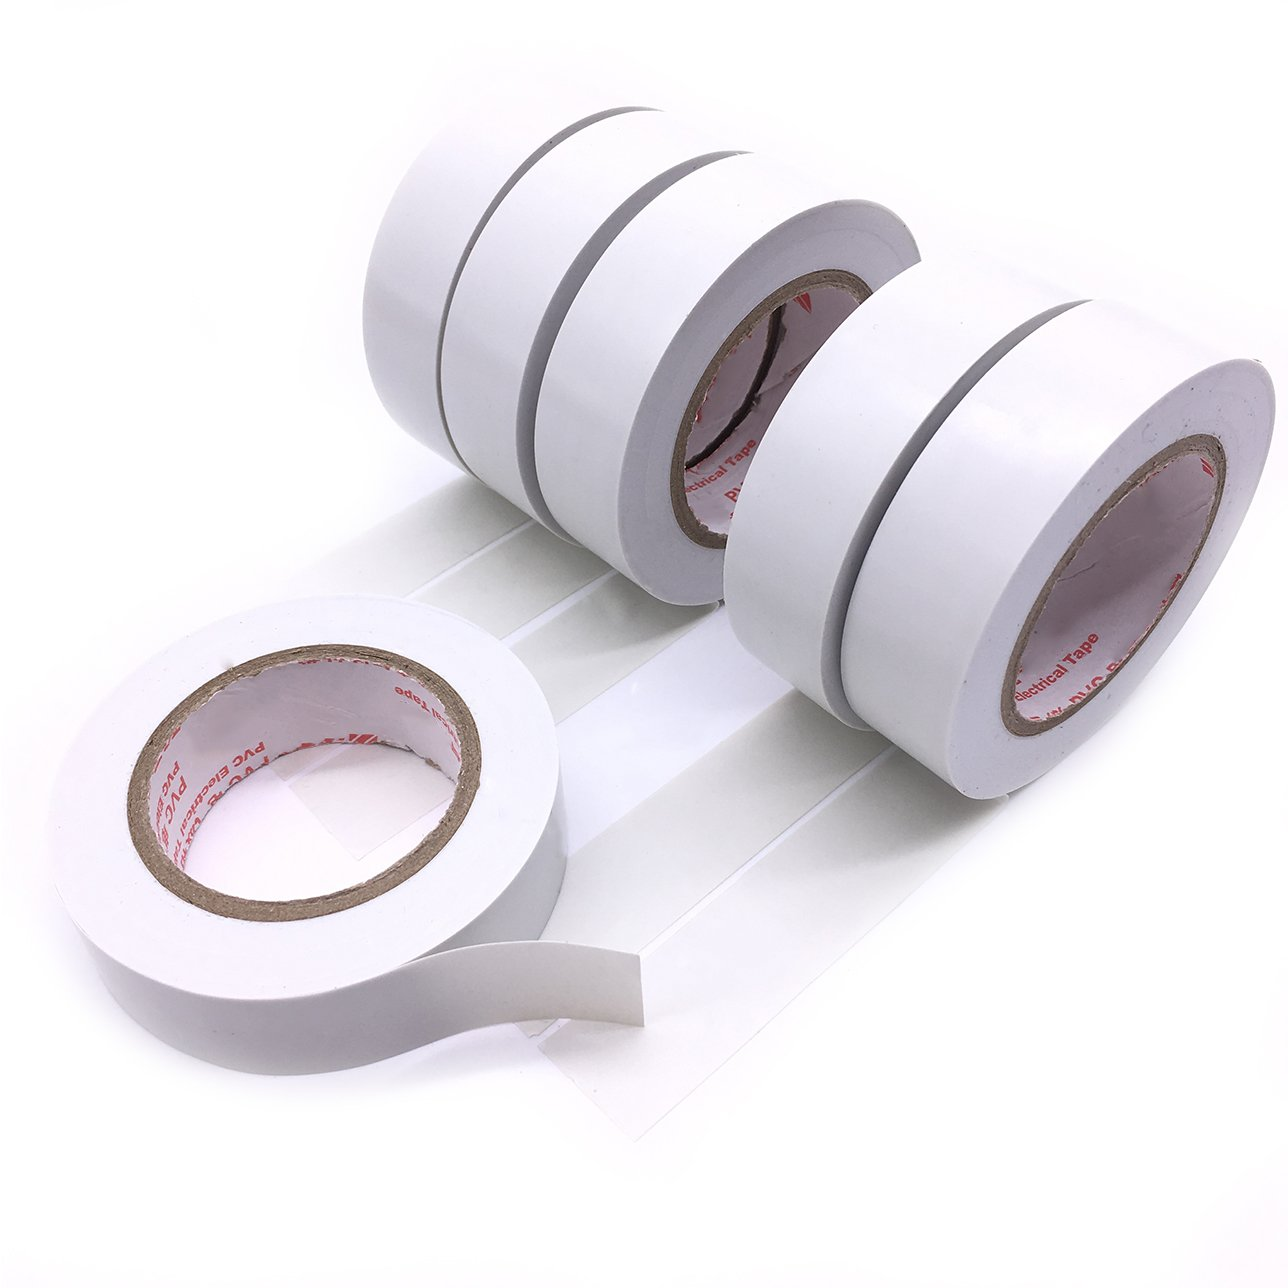 Maveek Electrical Tape 0.75 Inch 15m 6 Pack White Electrical ...